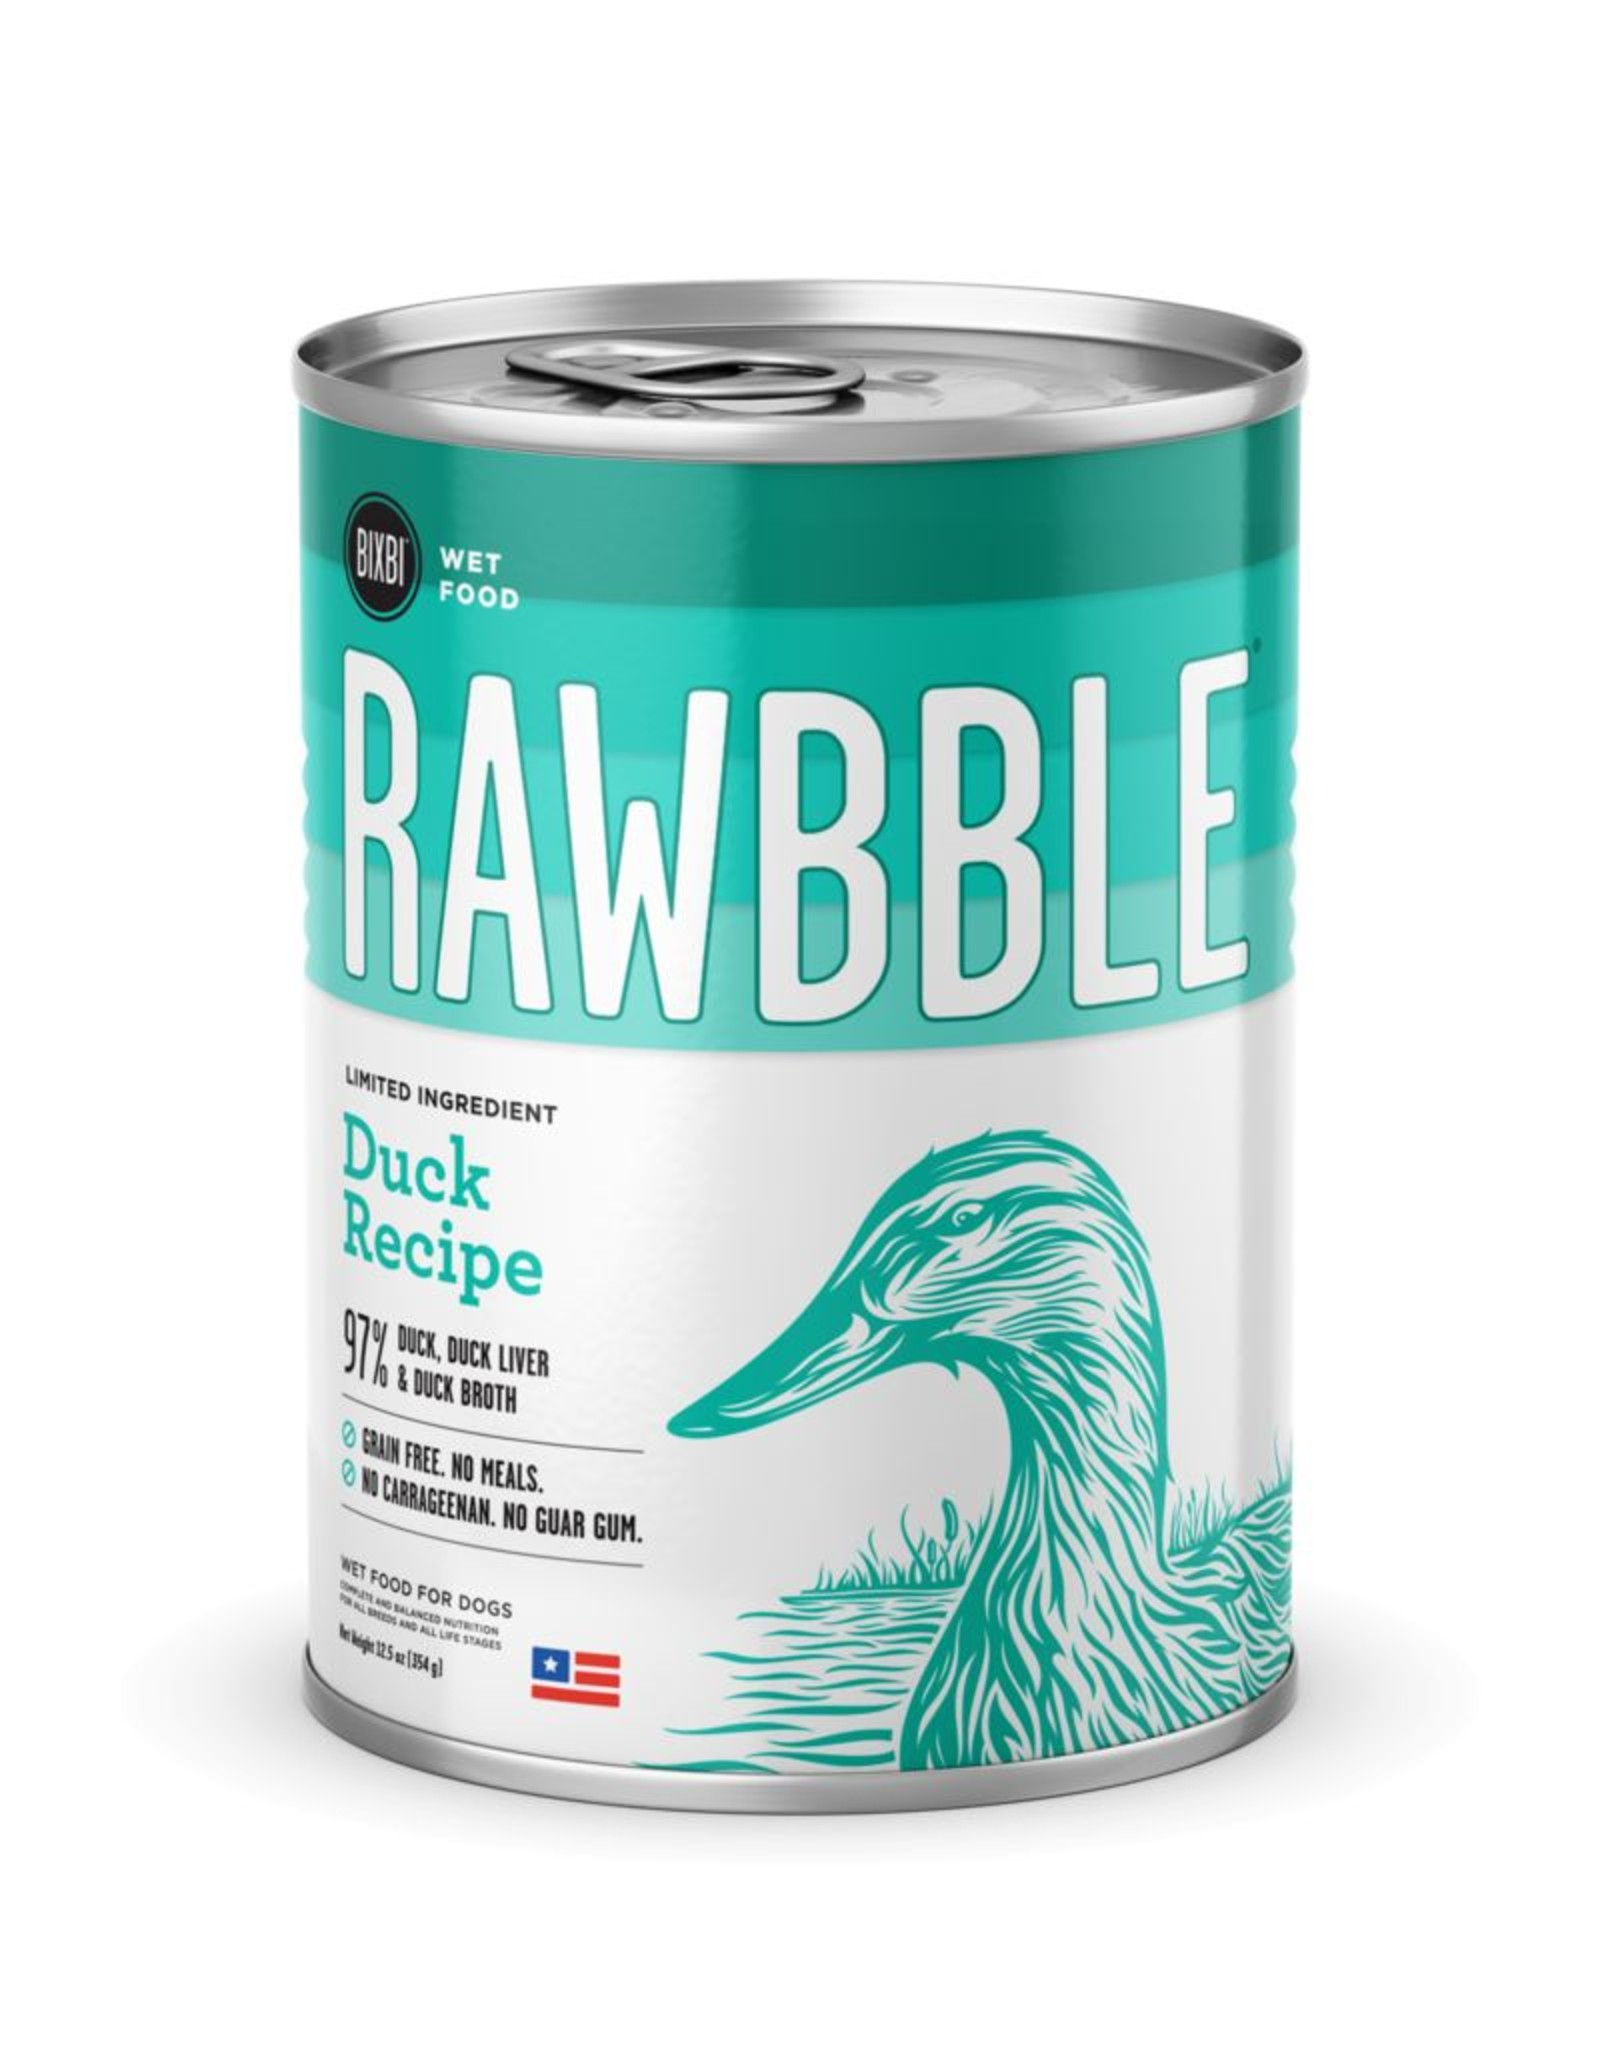 Bixbi Rawbble Duck Recipe 12.5oz